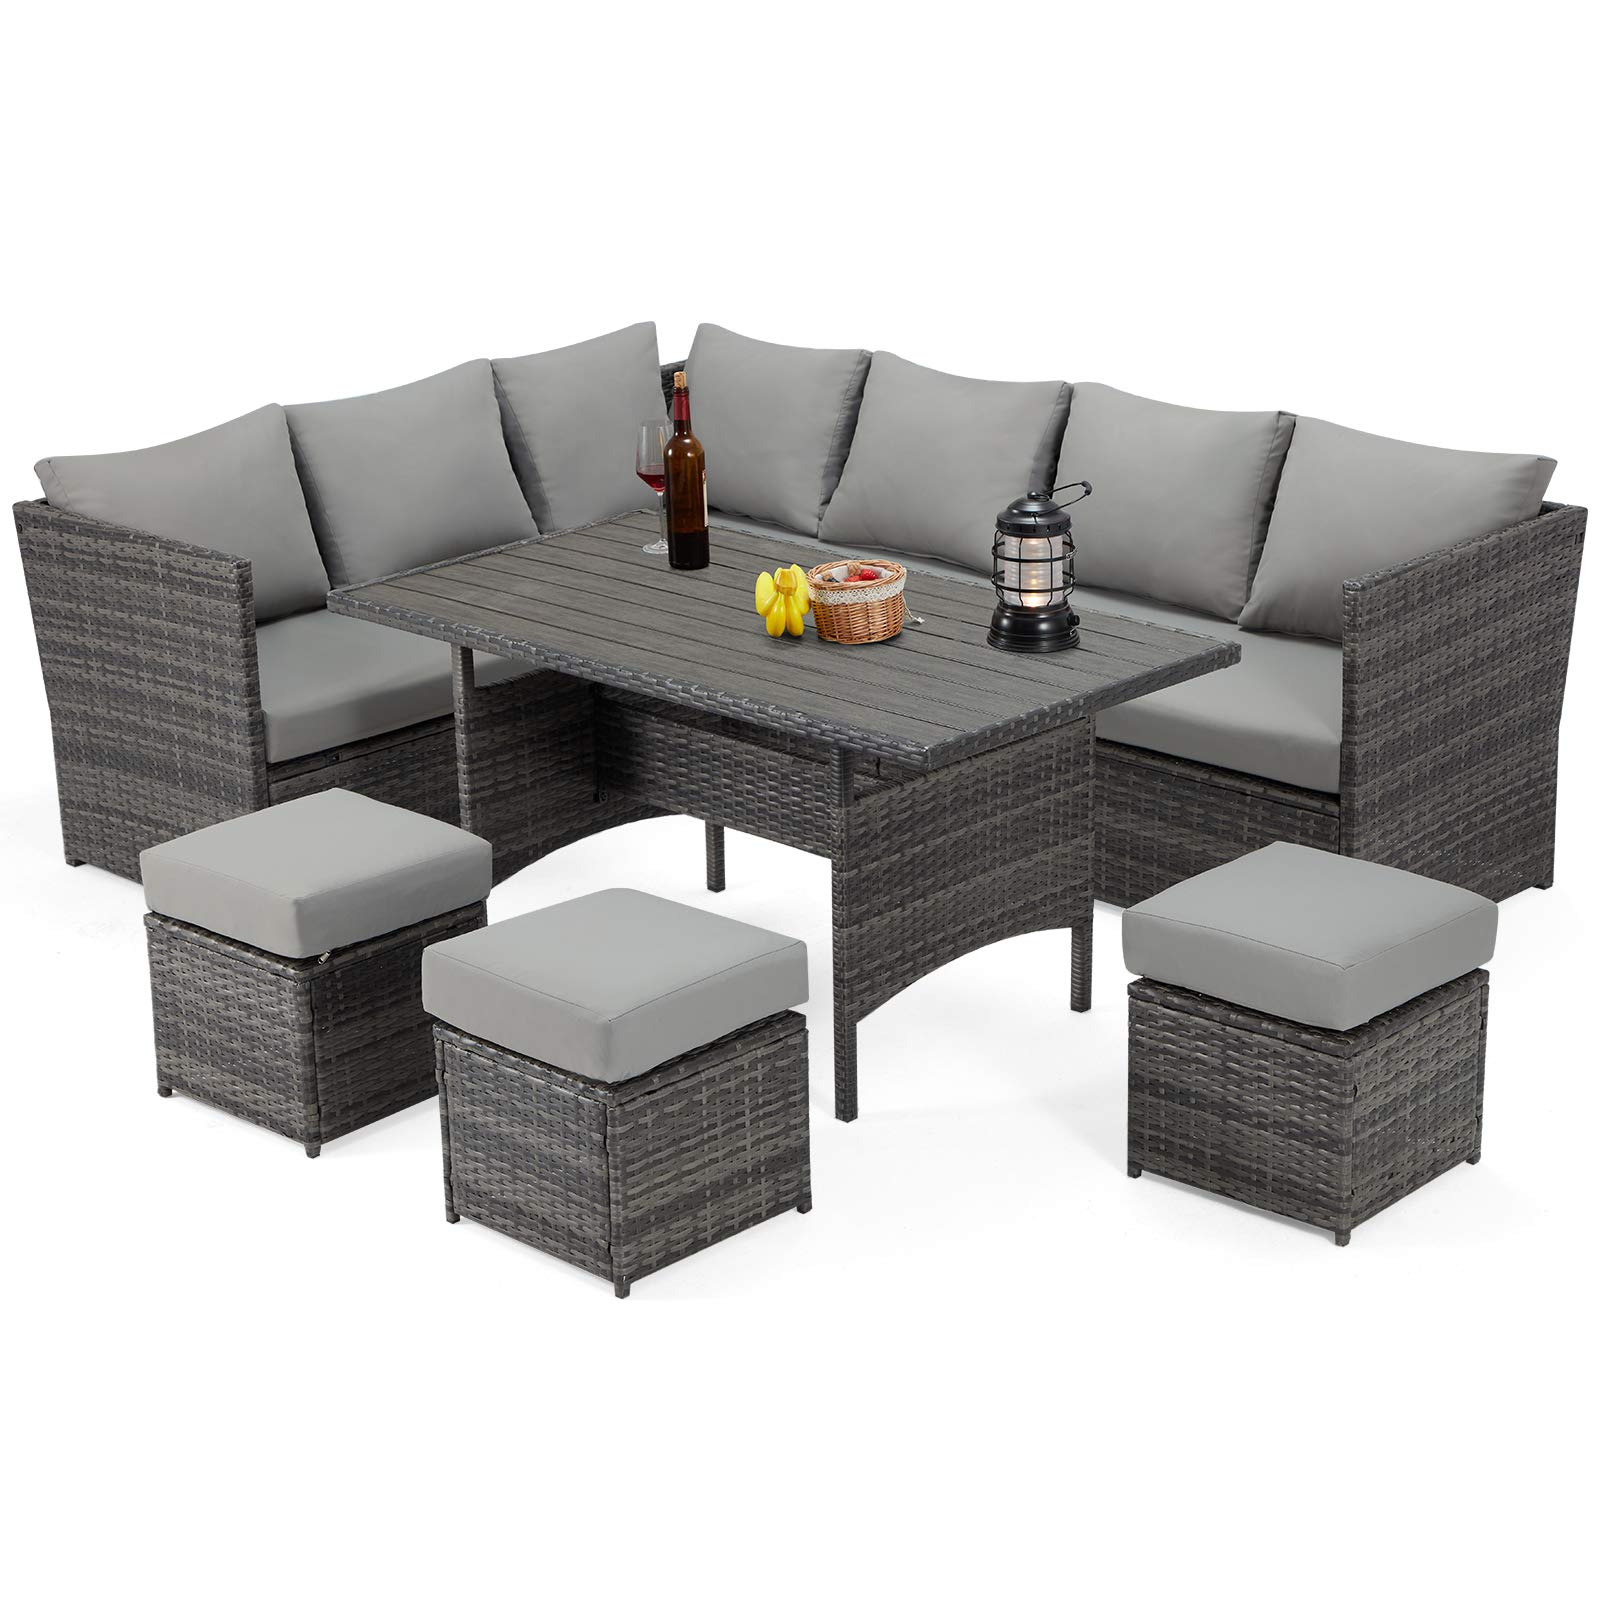 U-MAX 7 Pieces Patio Furniture Set Outdoor Sectional Sofa Conversation Set All Weather Wicker Rattan Couch Dining Table & ...